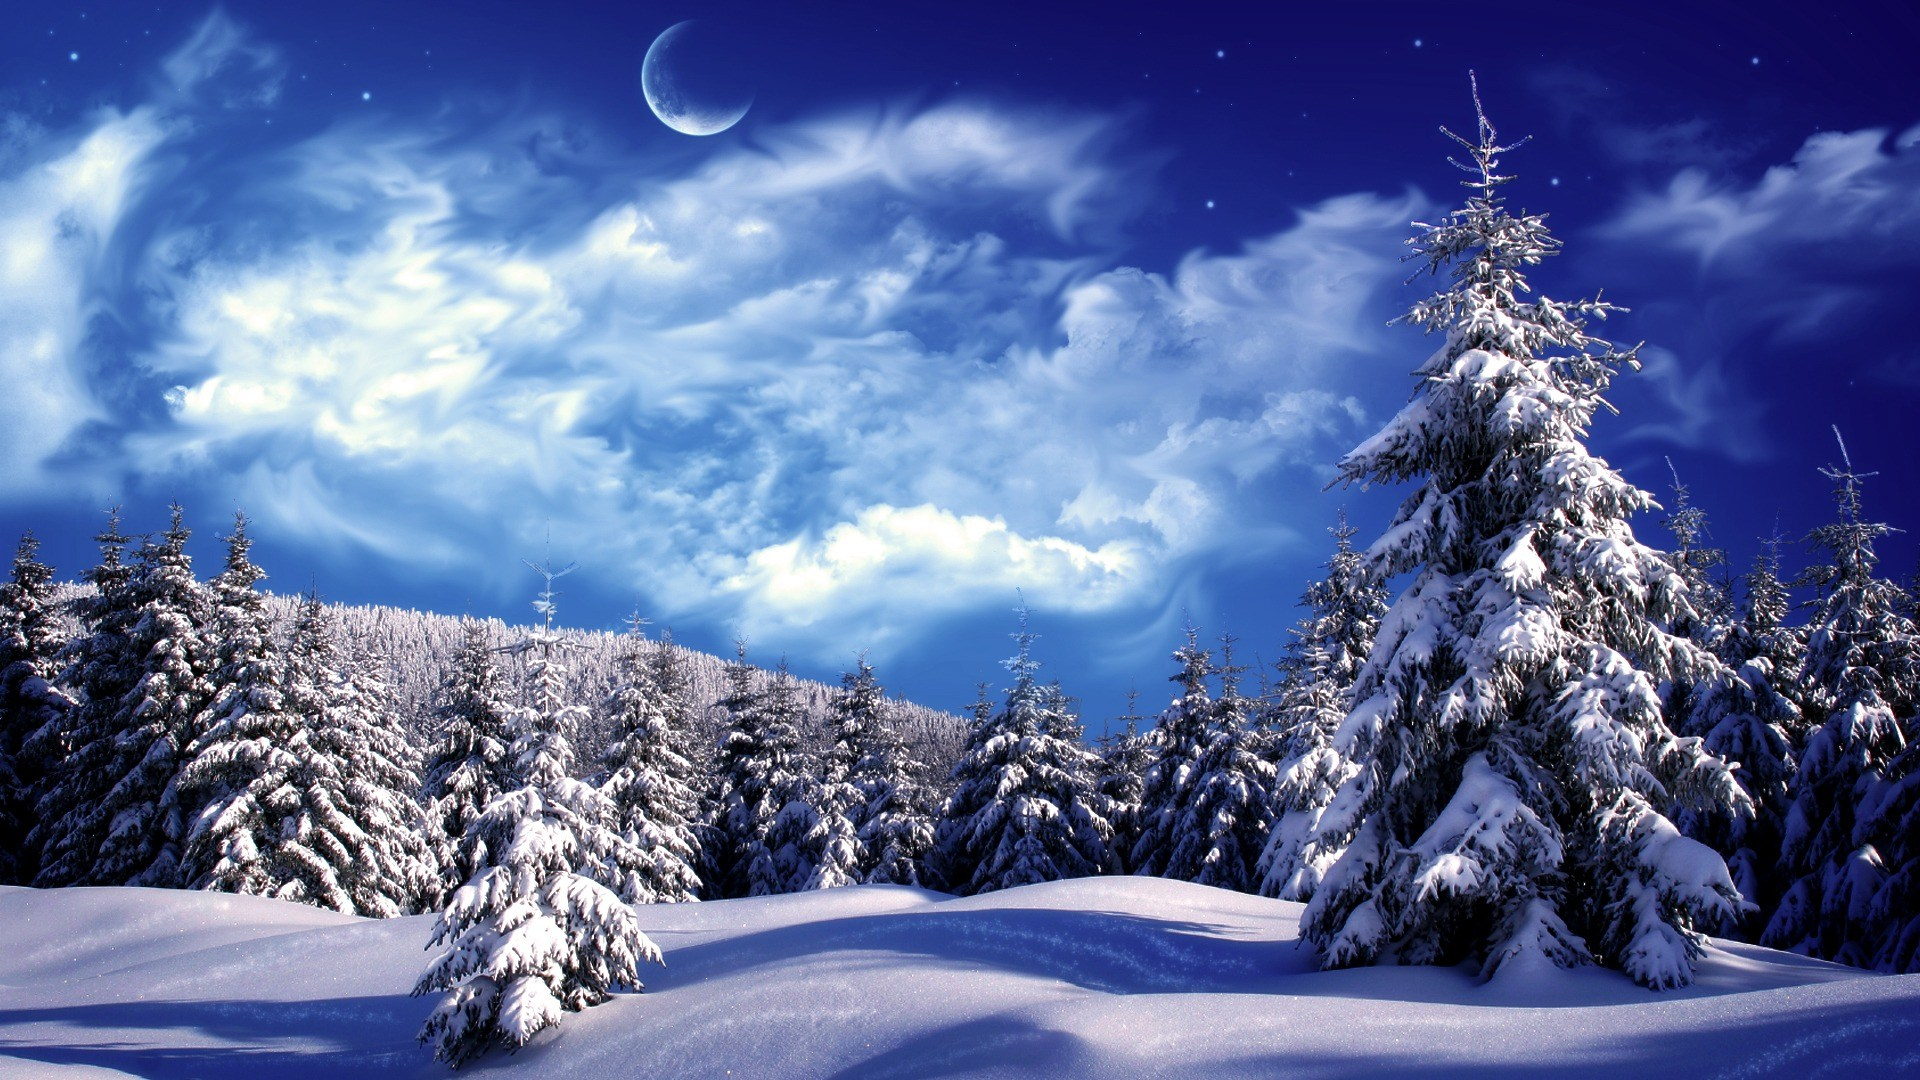 Picture of a snowy scene